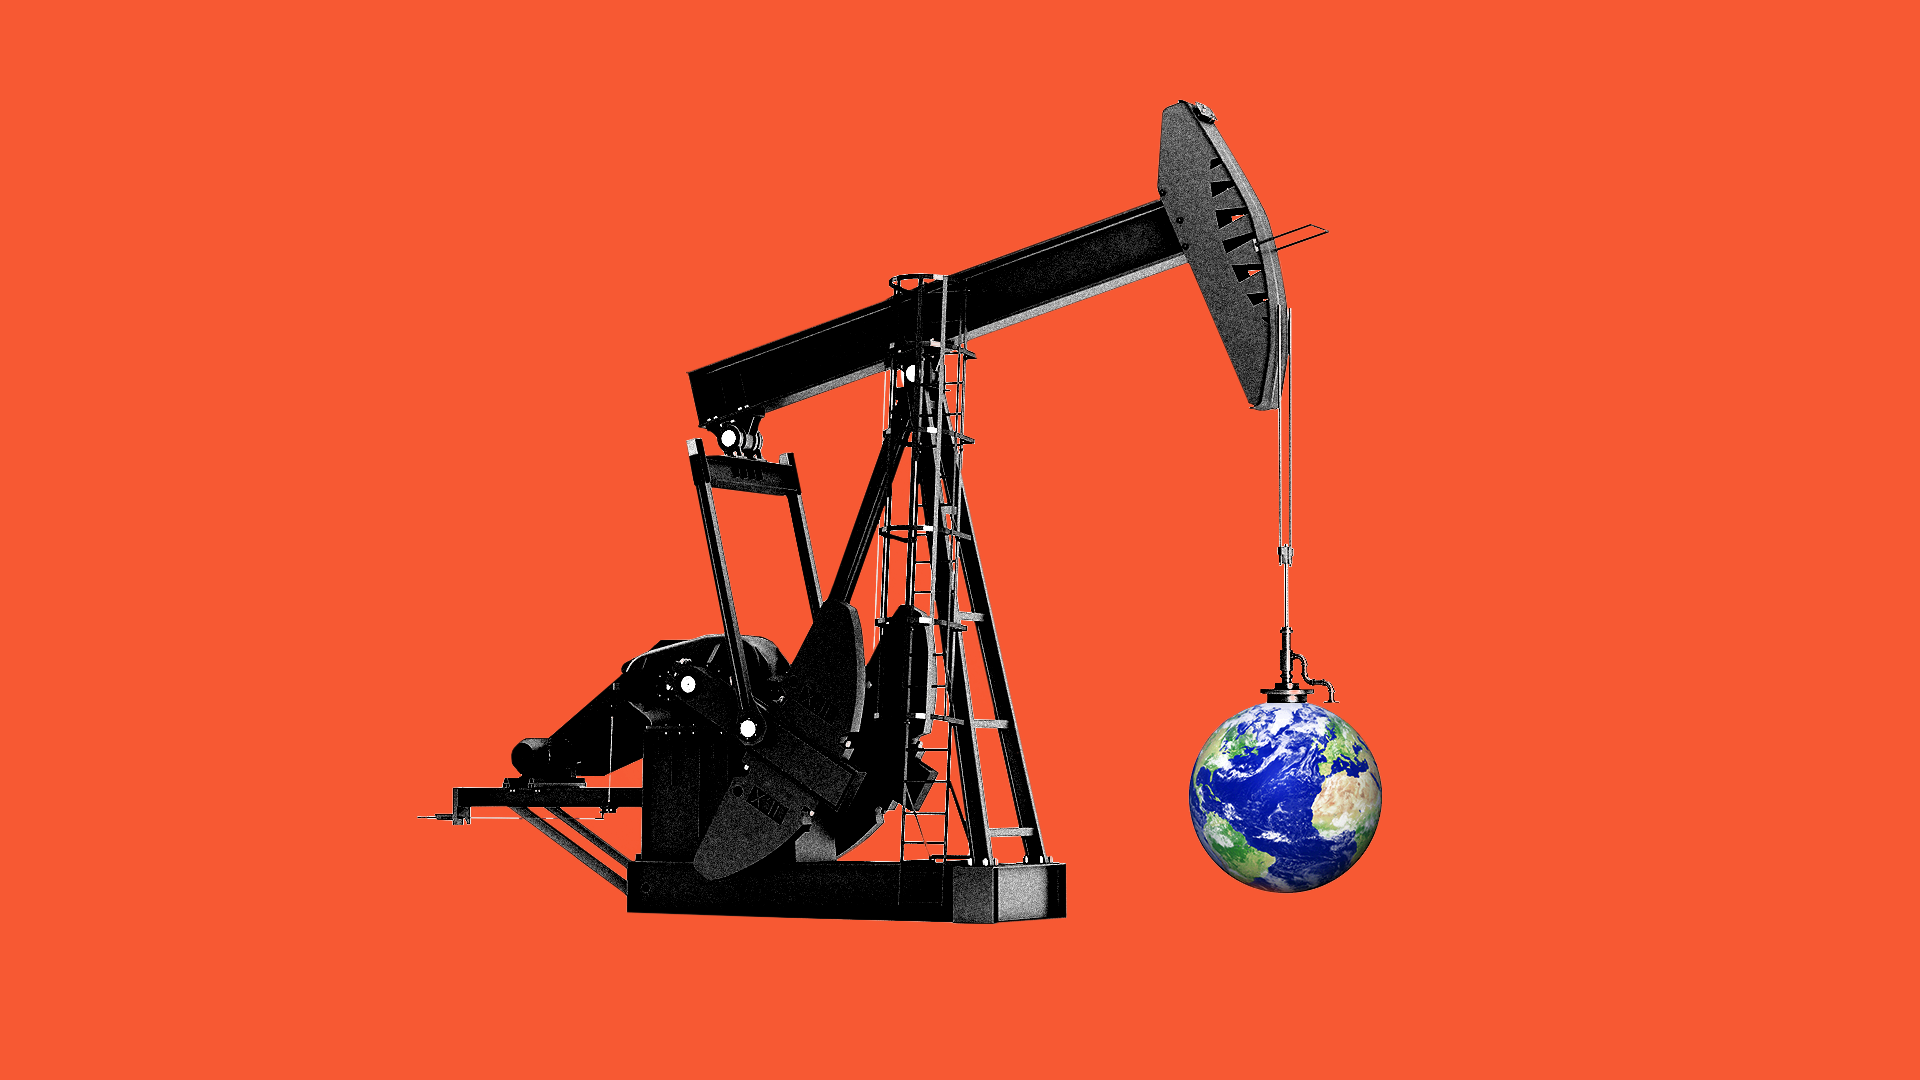 Pump jack holding up Earth.